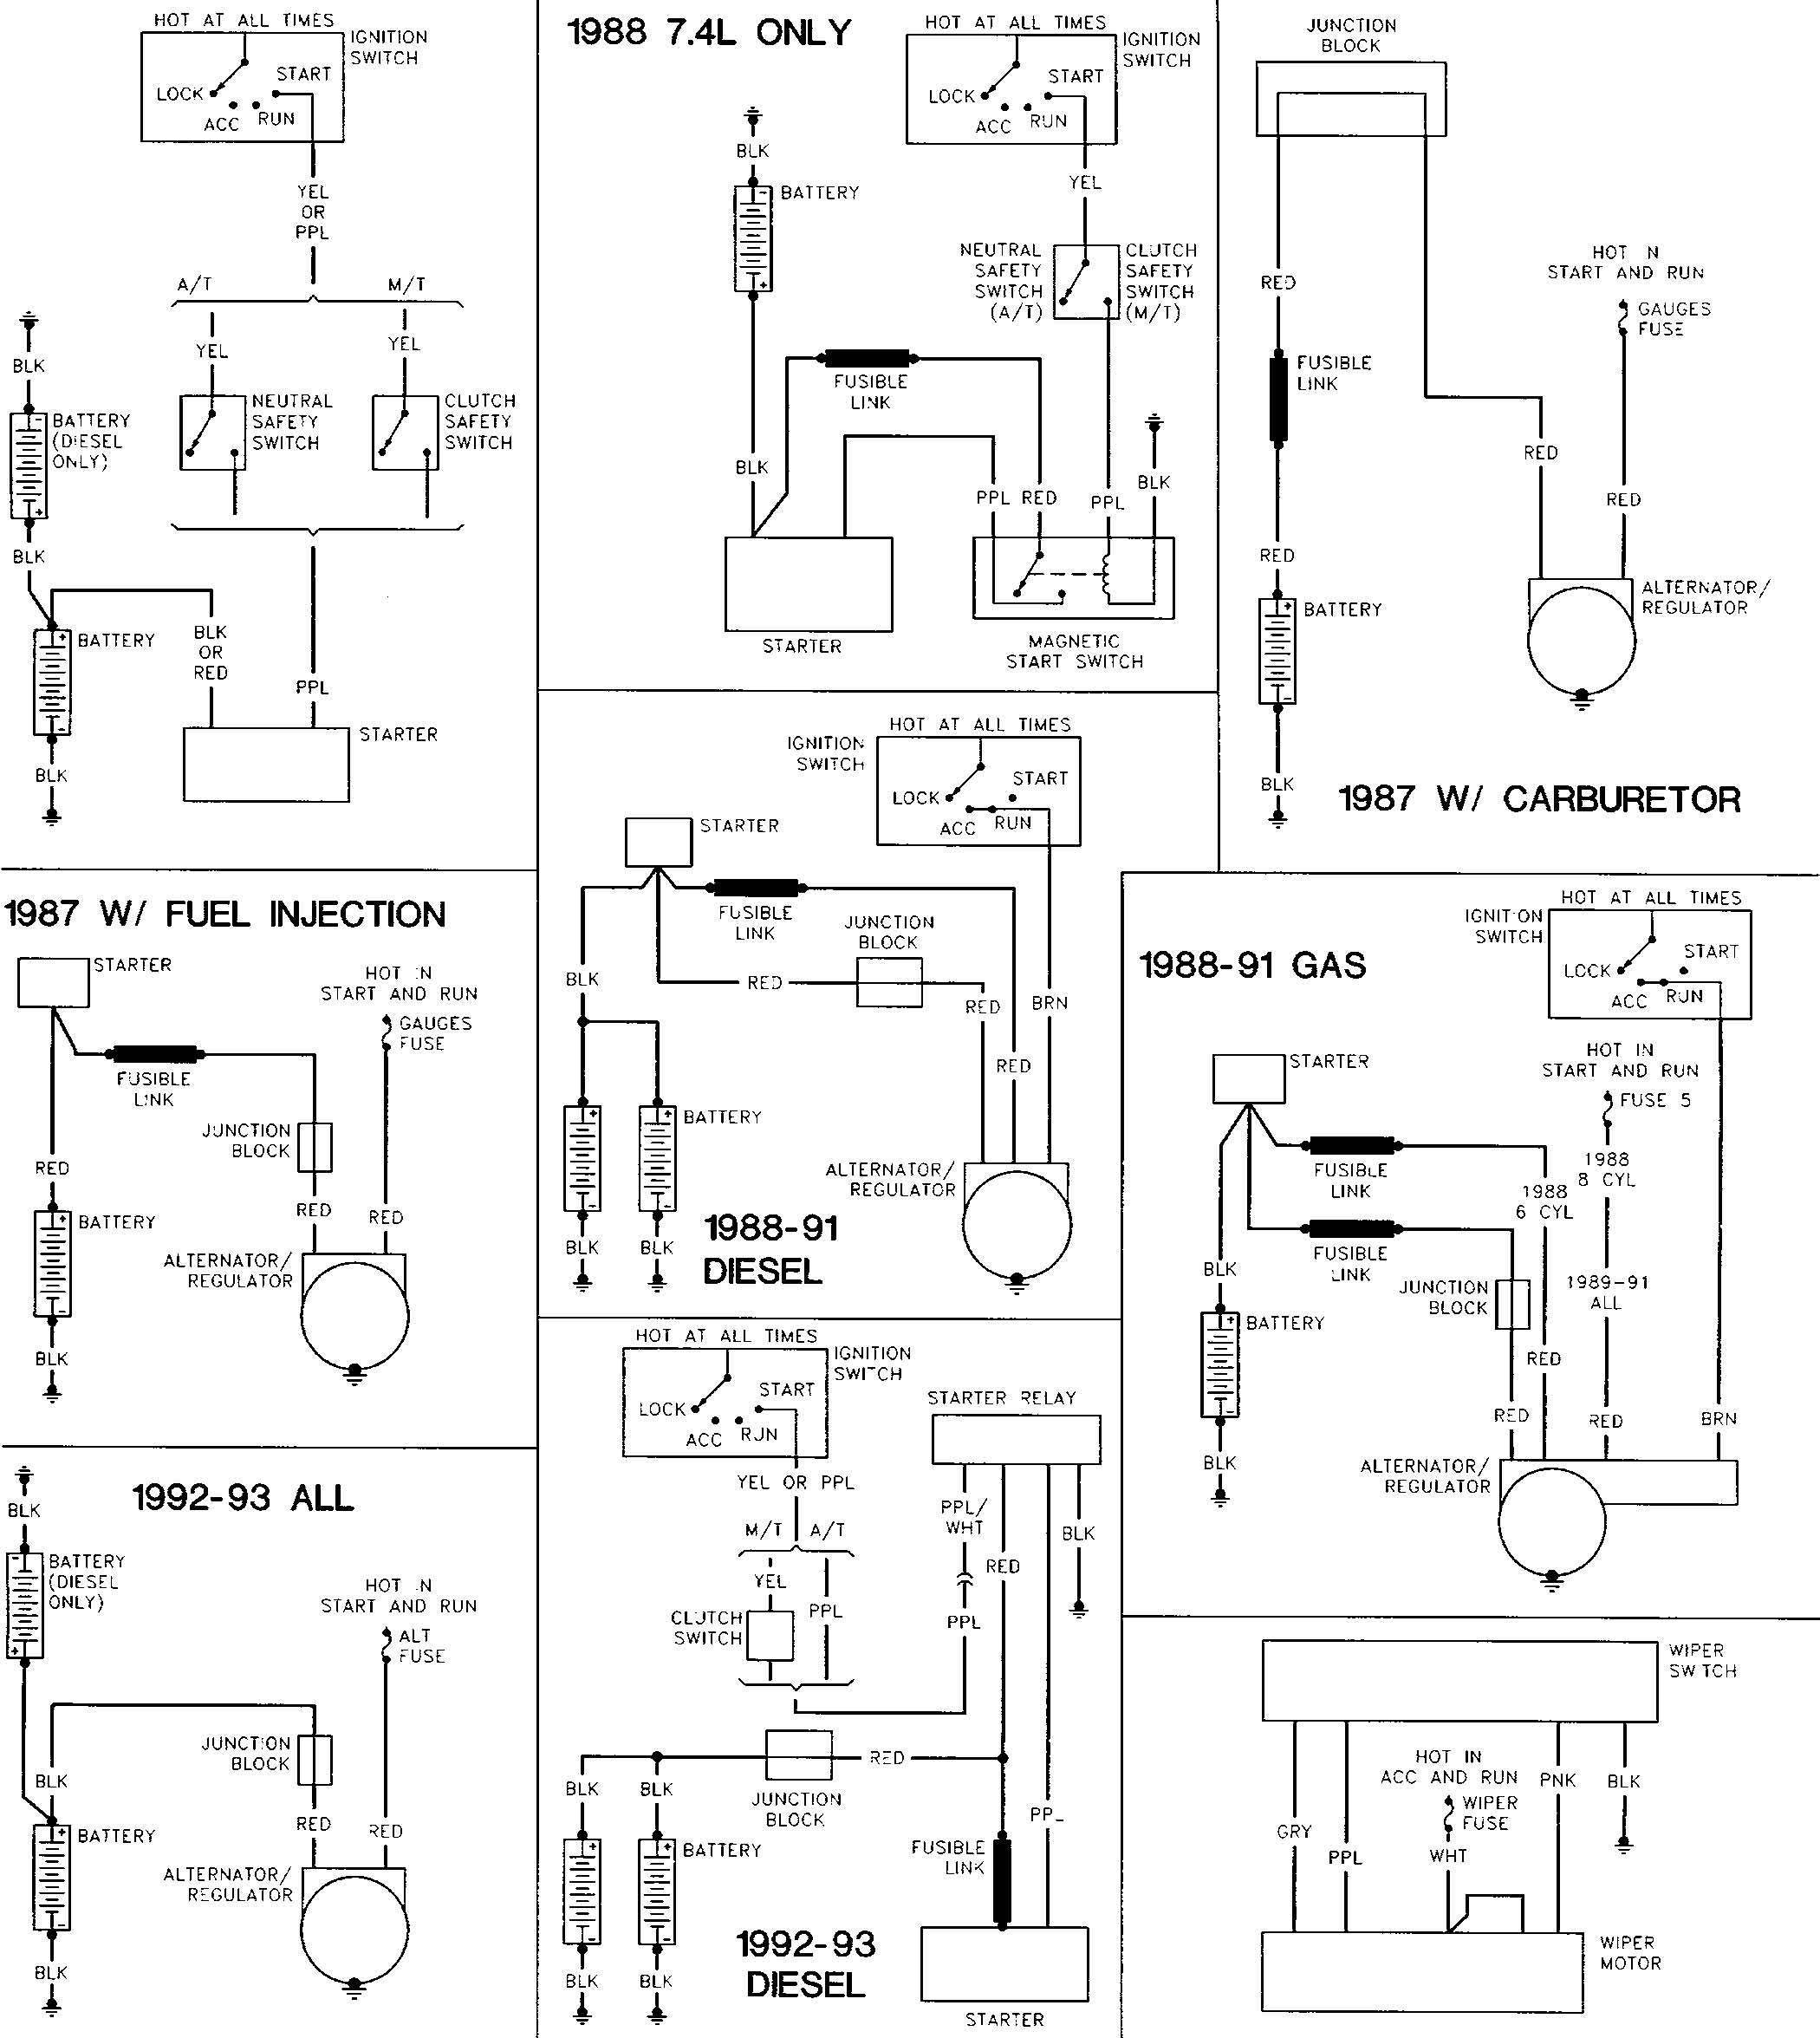 Fleetwood Rv Electrical Schematic - Diagram Data on